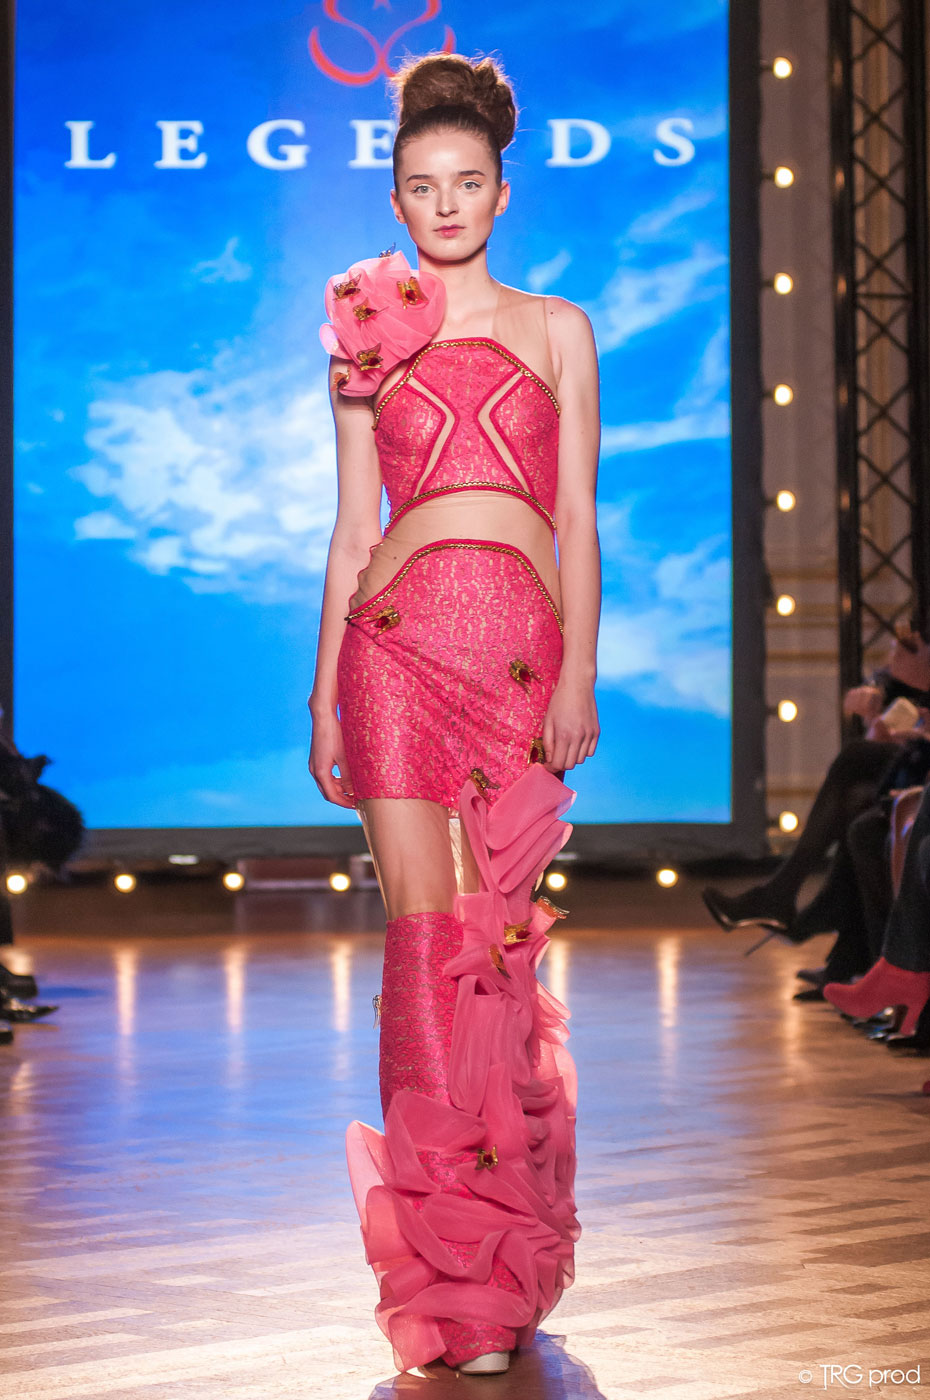 Legends-fashion-runway-show-haute-couture-paris-spring-2015-the-impression-17